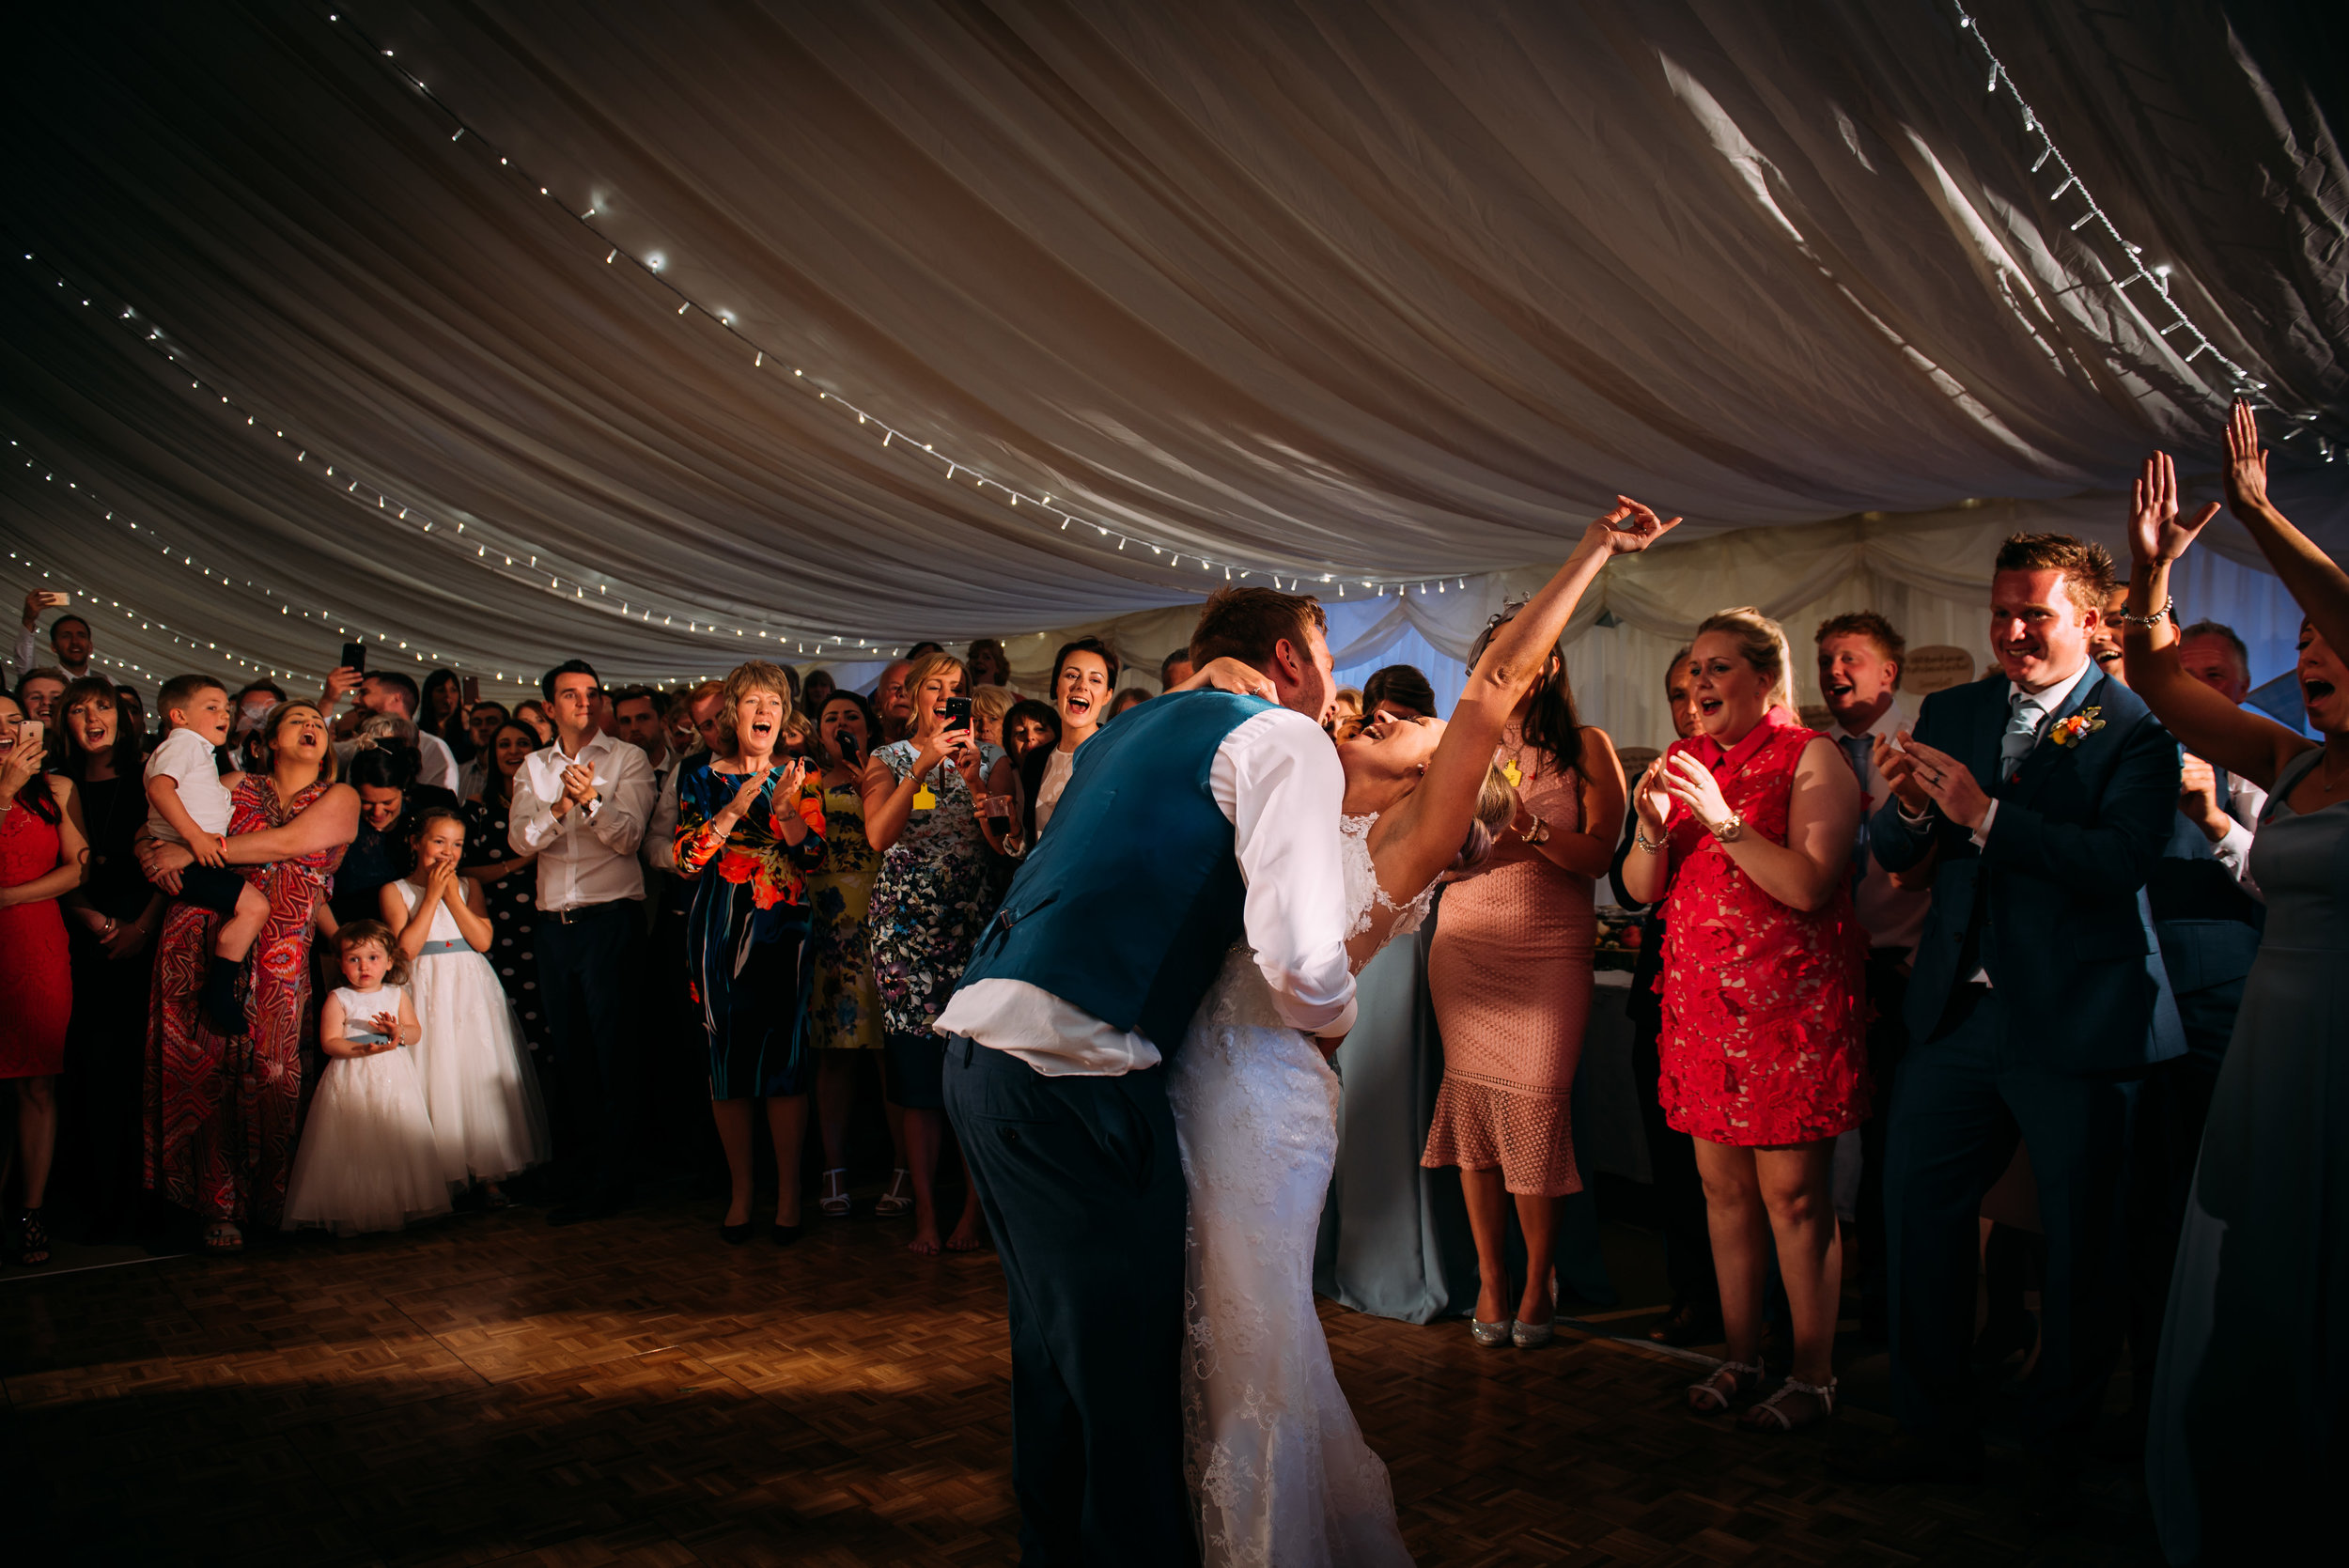 the groom tips his bride during the first dance. The guest in the background cheer